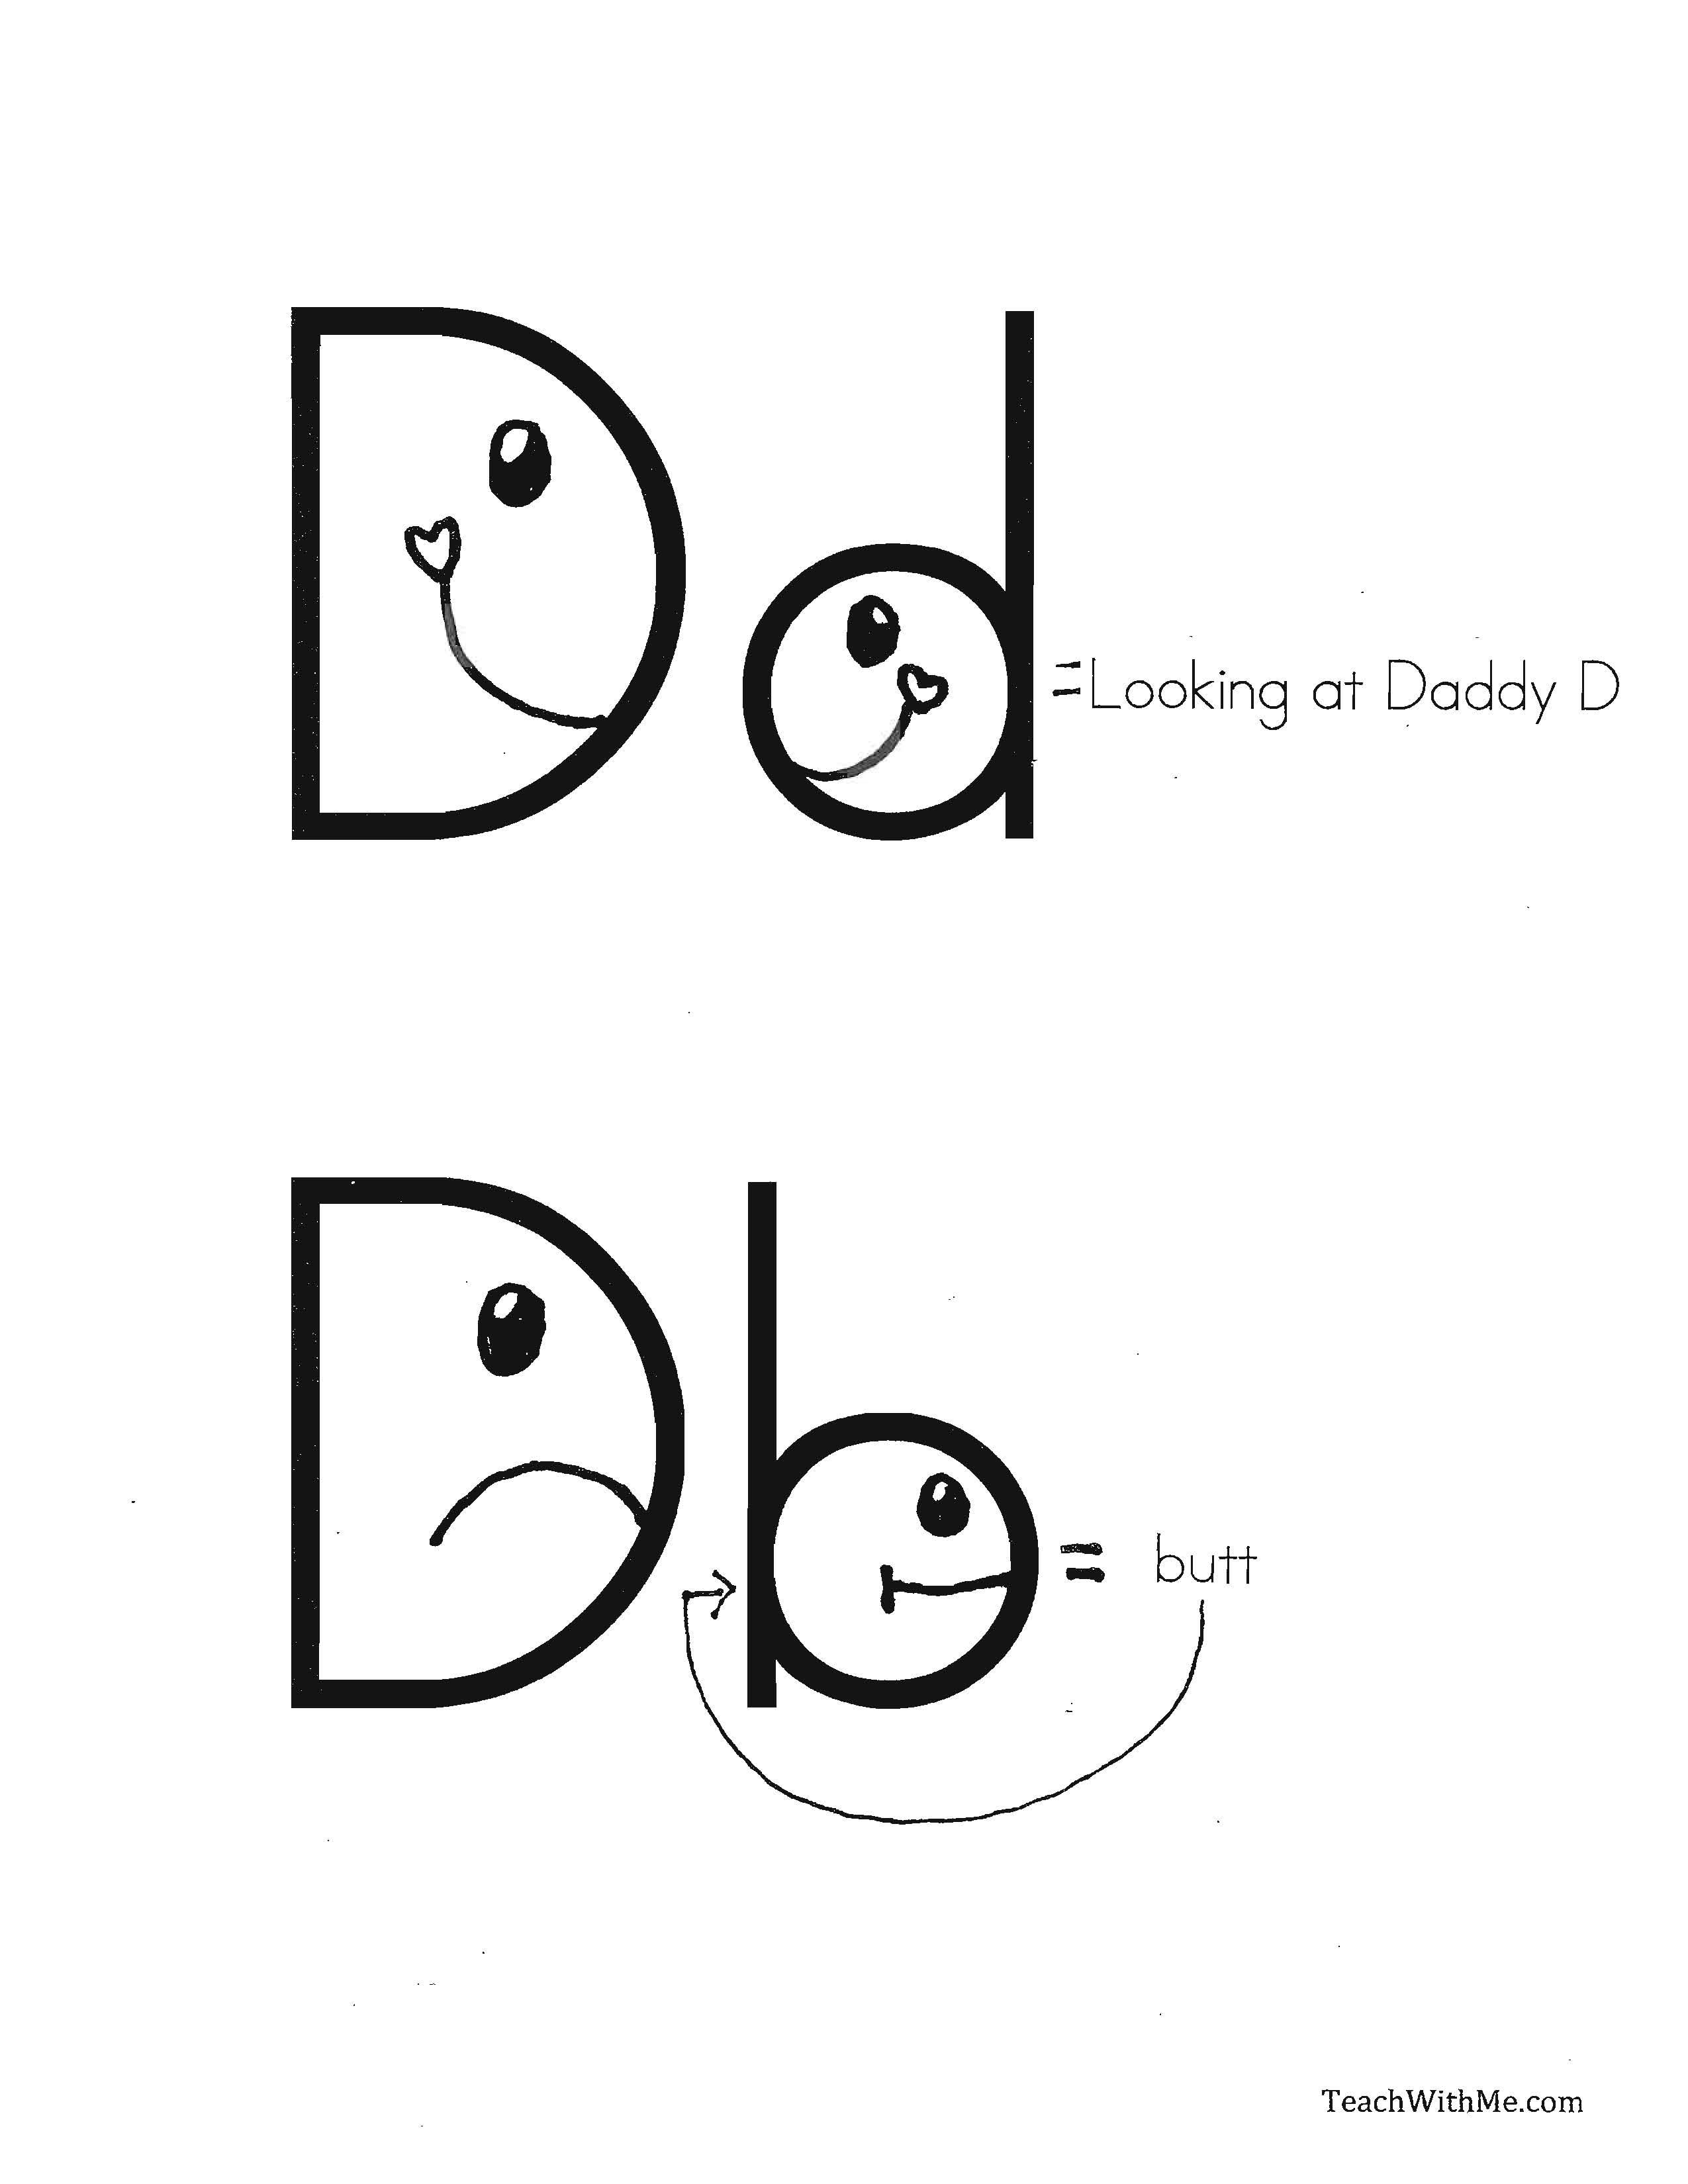 Taking The Confusion Out Of B And D